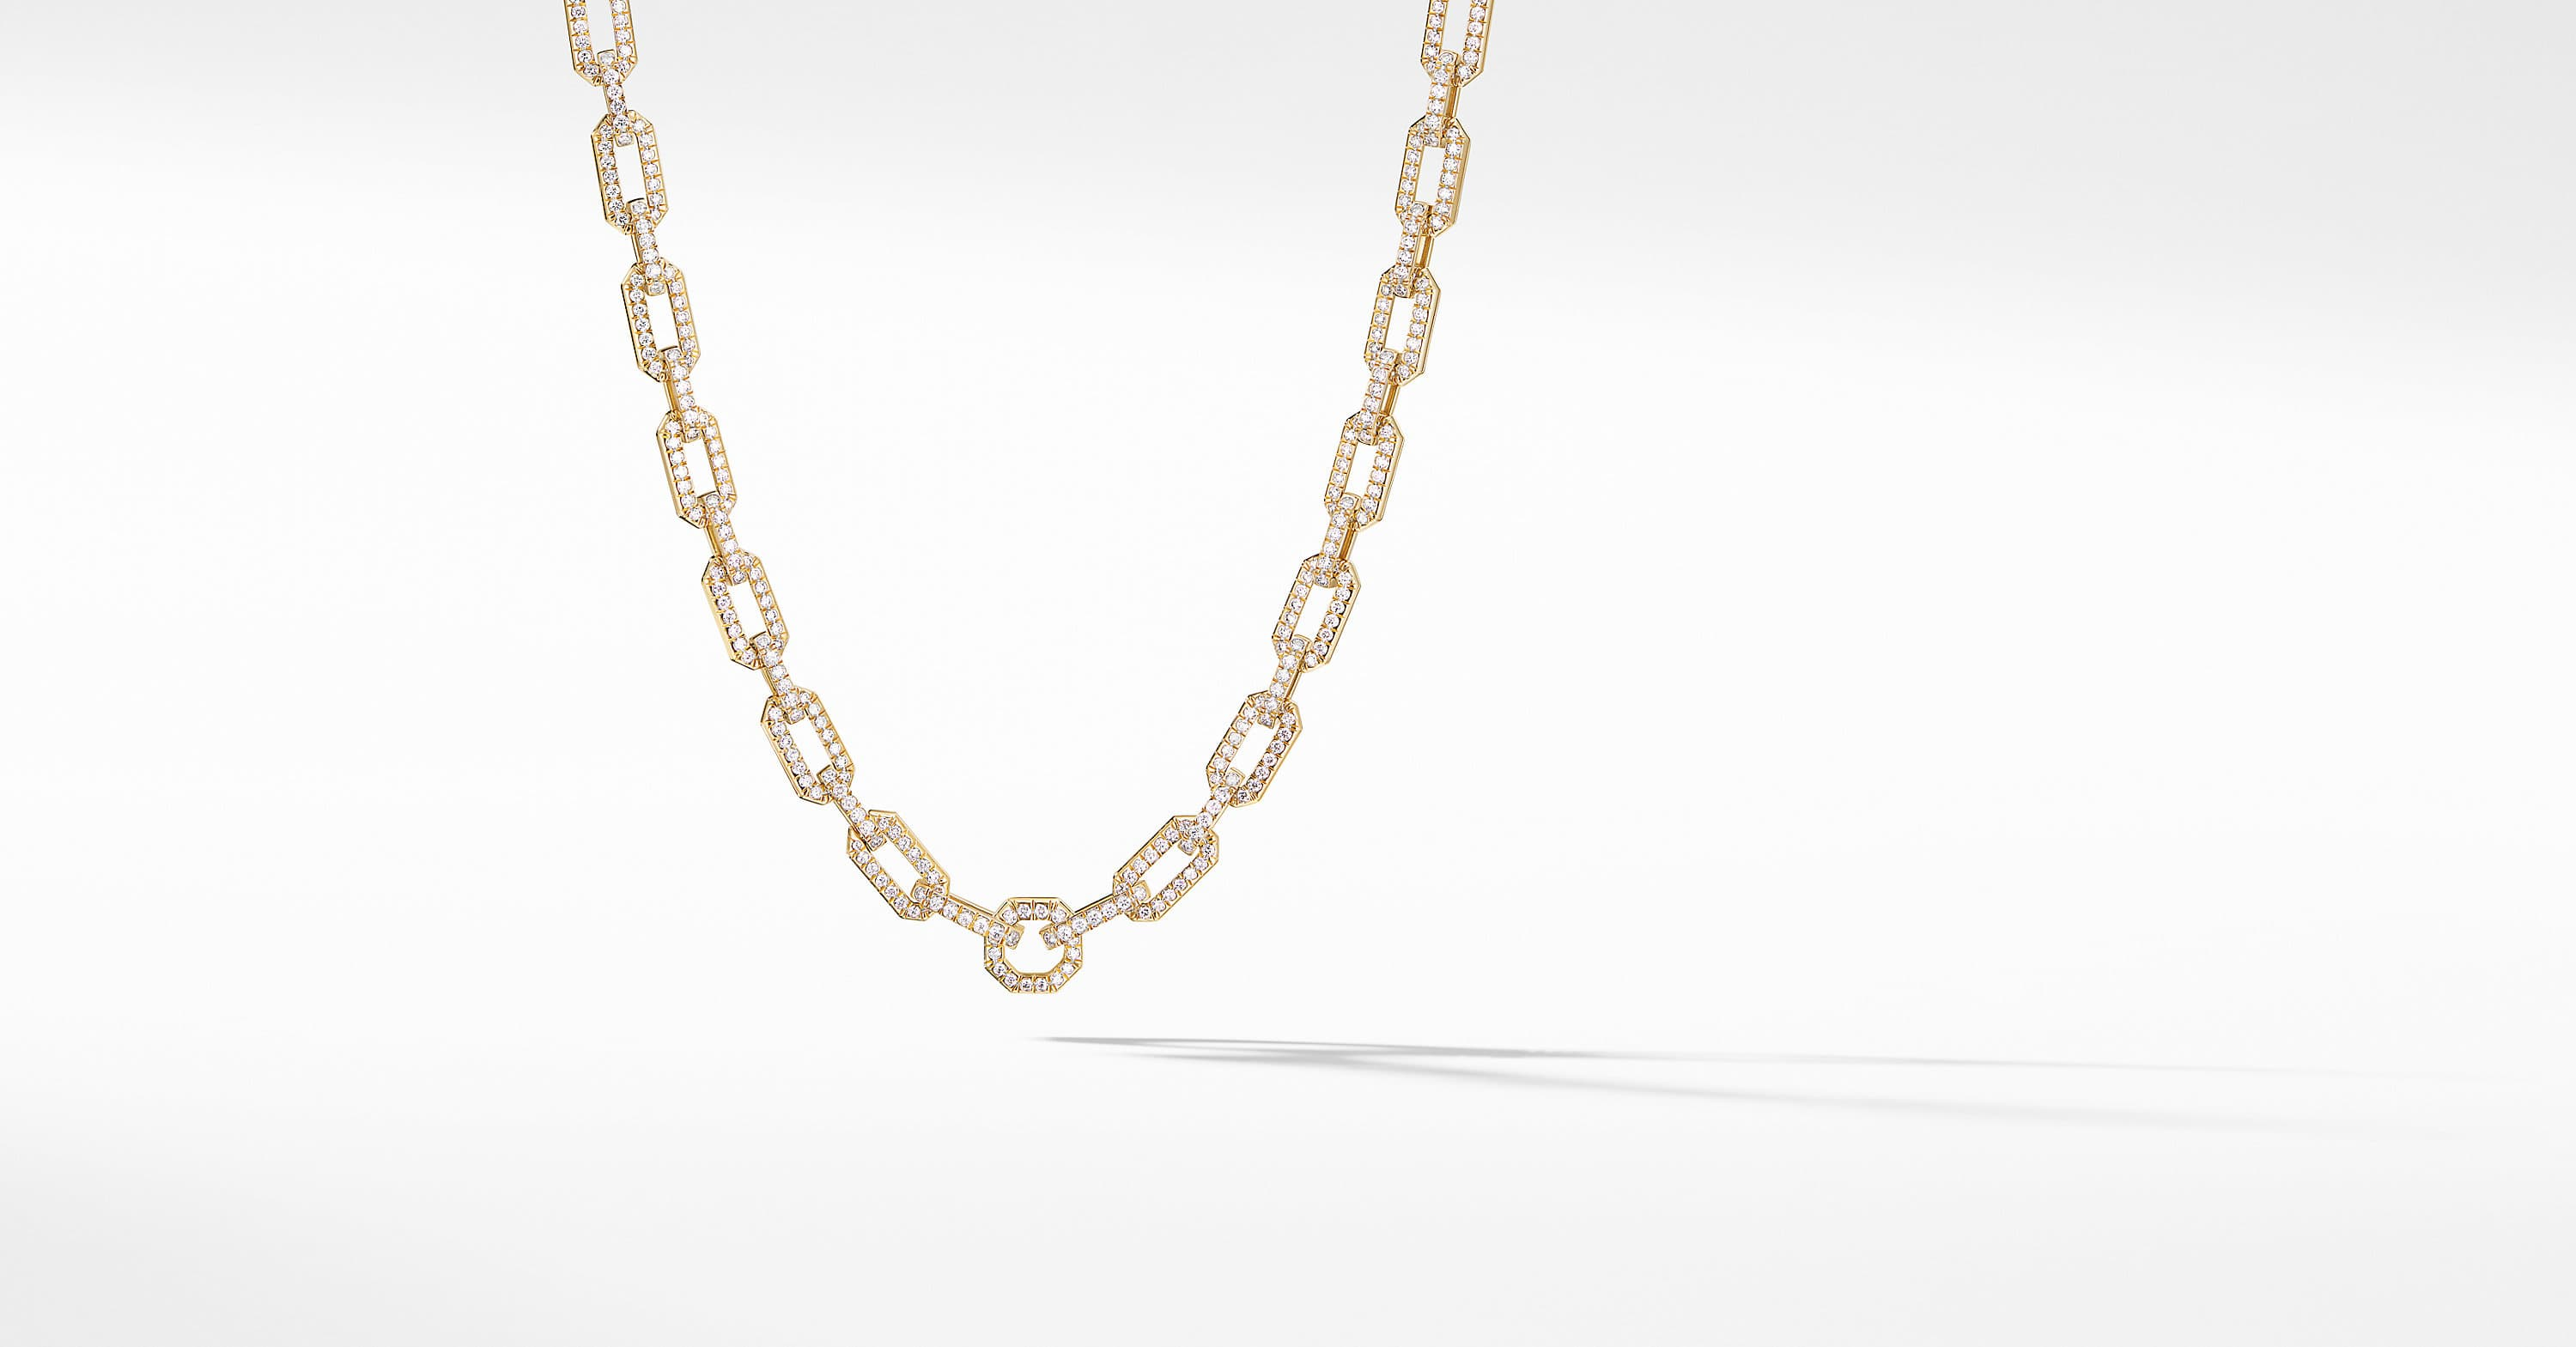 Starburst Chain Necklace in 18K Yellow Gold with Pavé